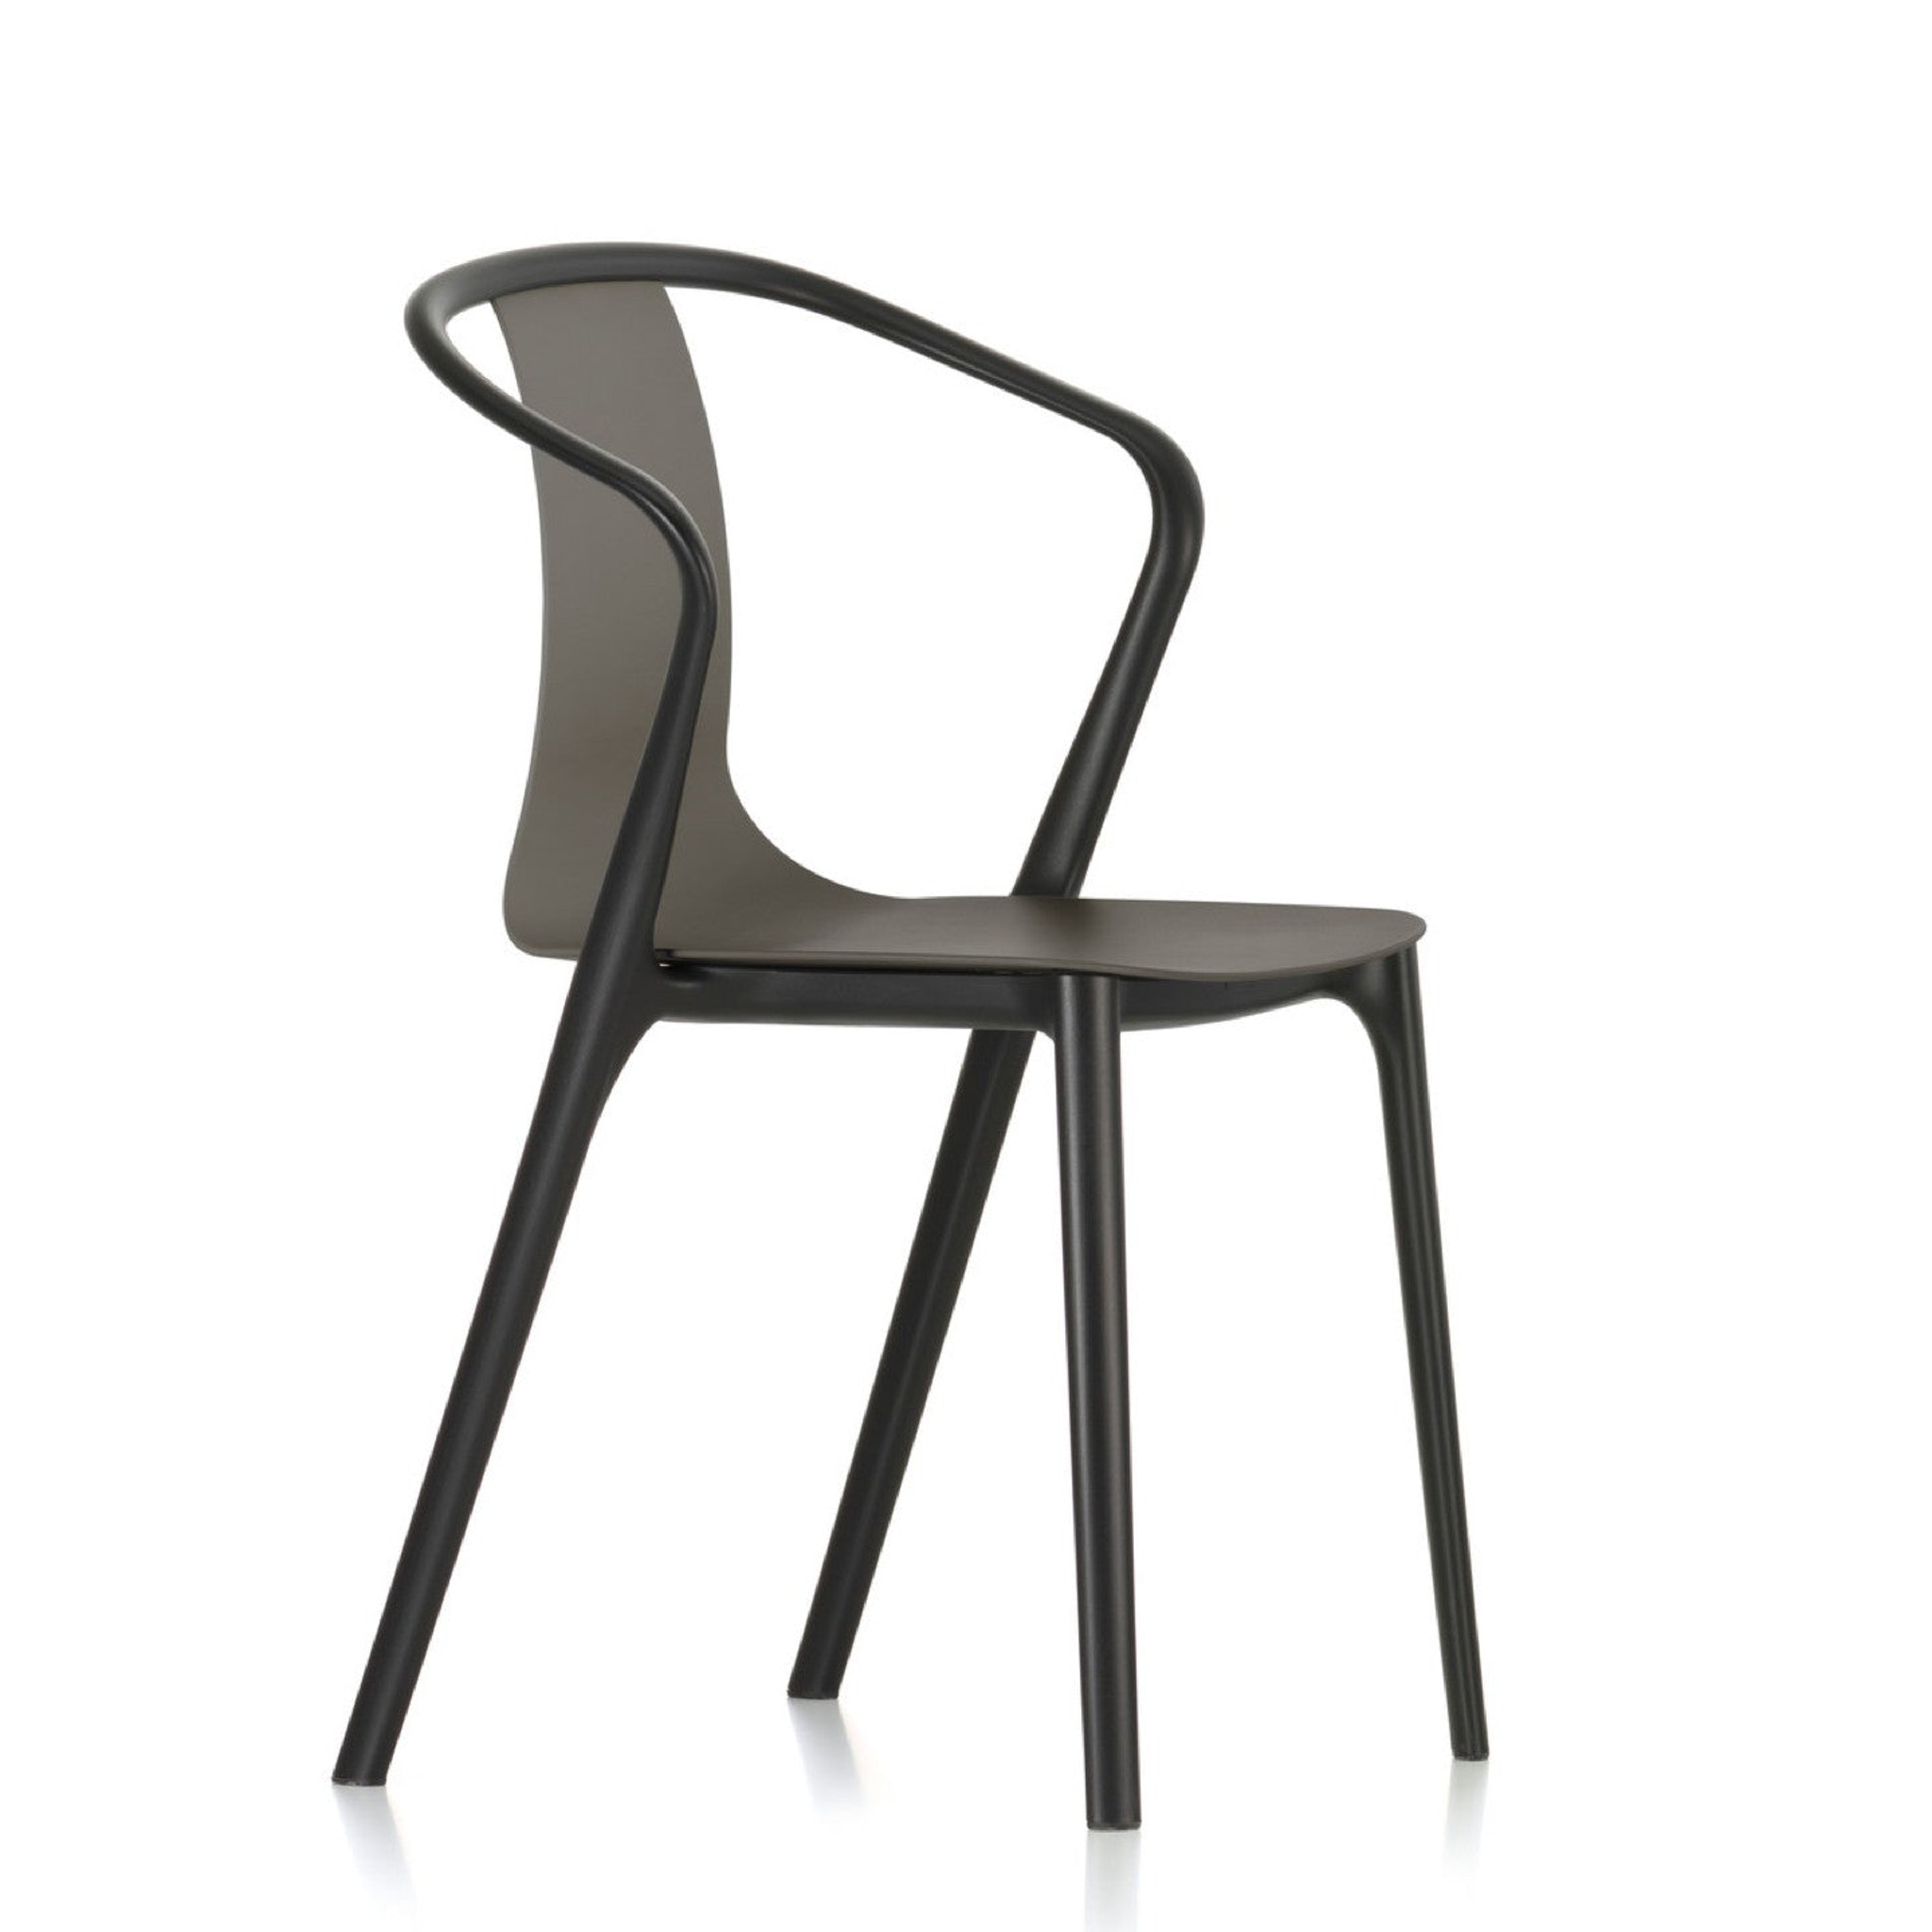 Belleville Armchair Plastic by Vitra